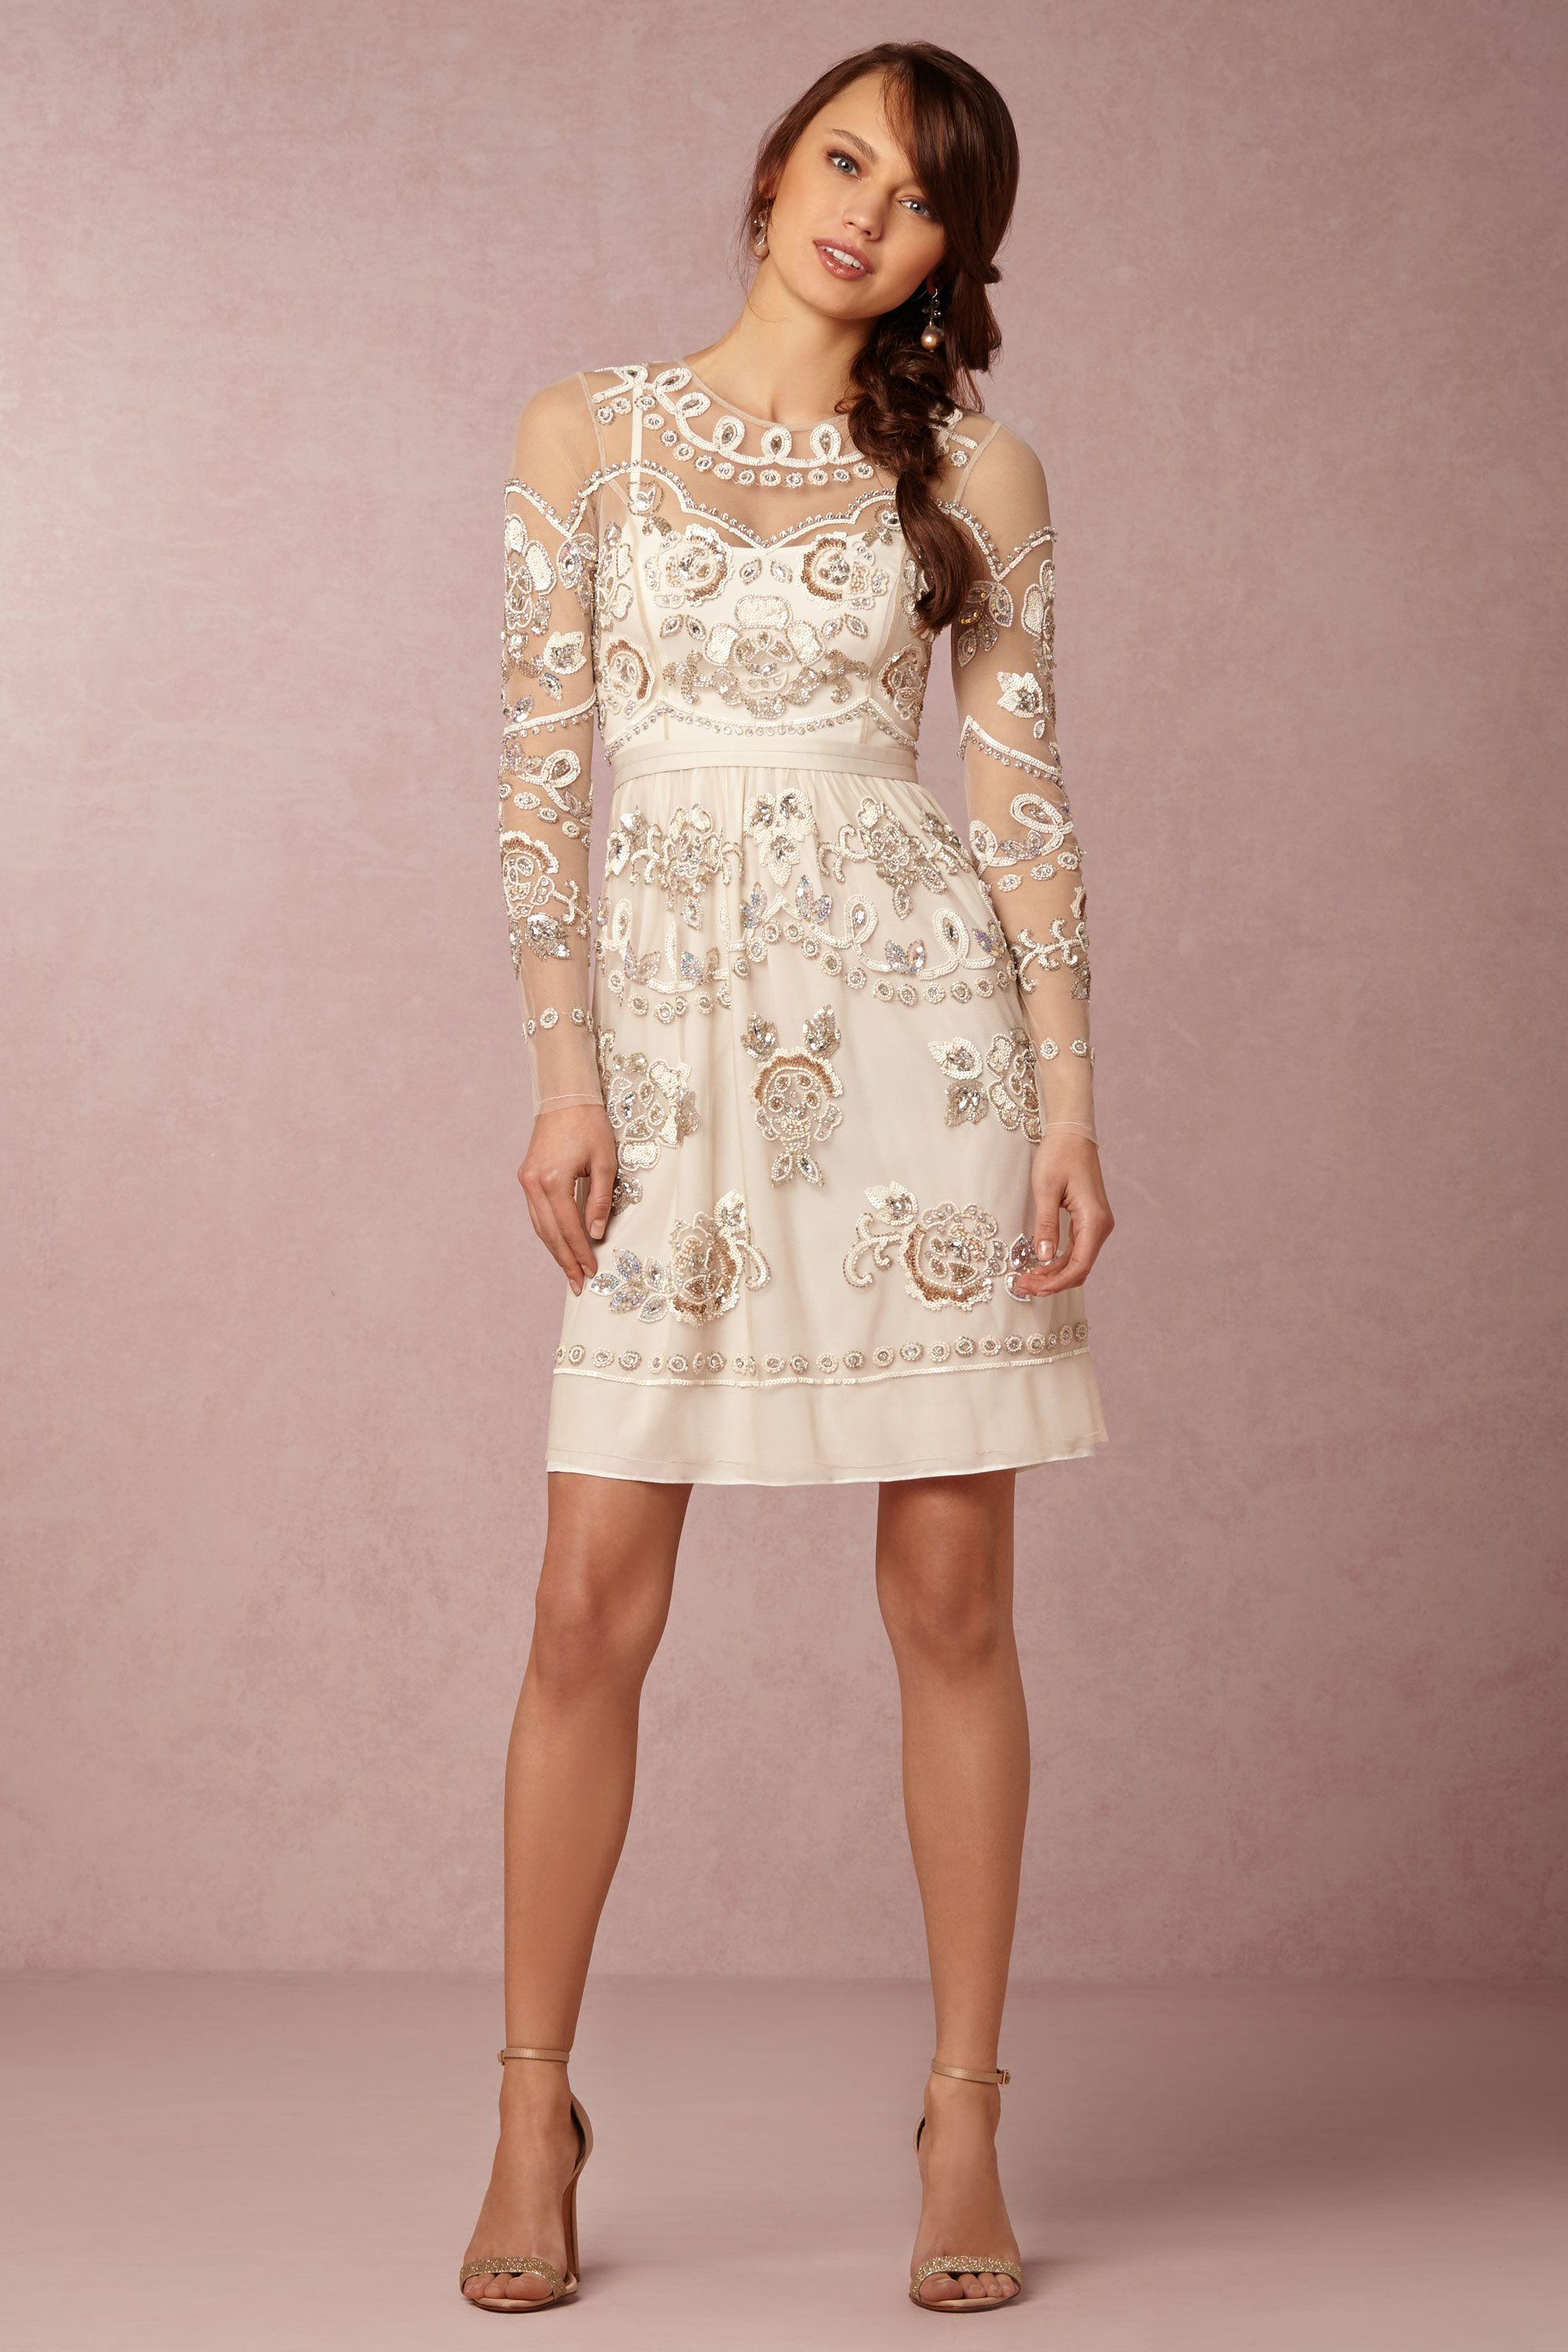 Garden Scatter Dress from @BHLDN #BHLDNwishes | Your BHLDN Wishes ...